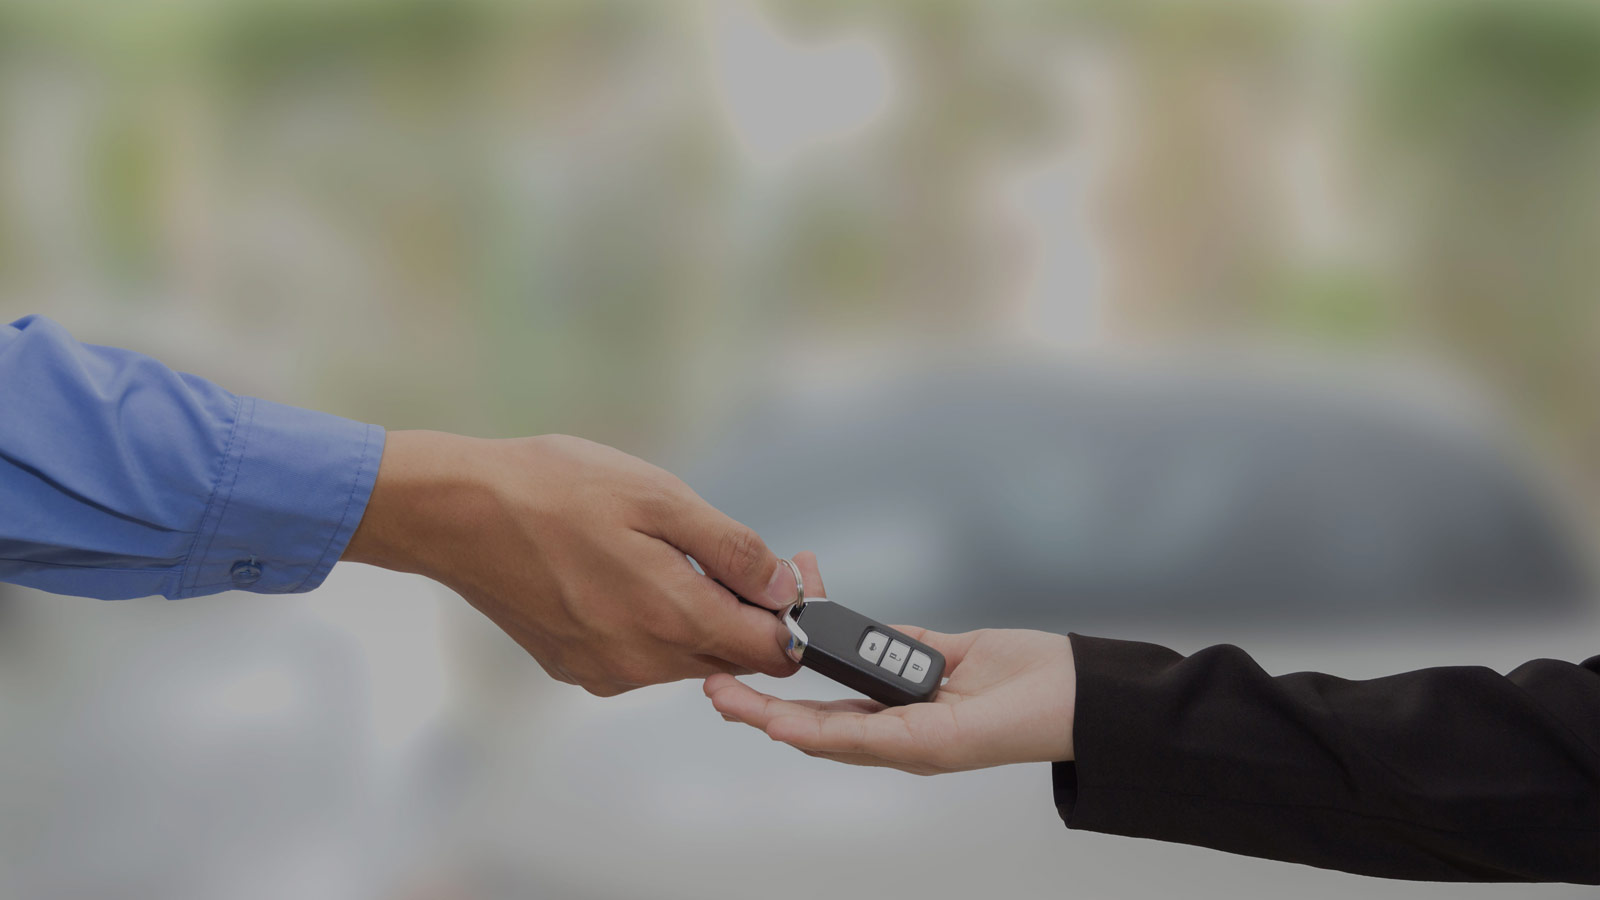 Passing keys to loan car